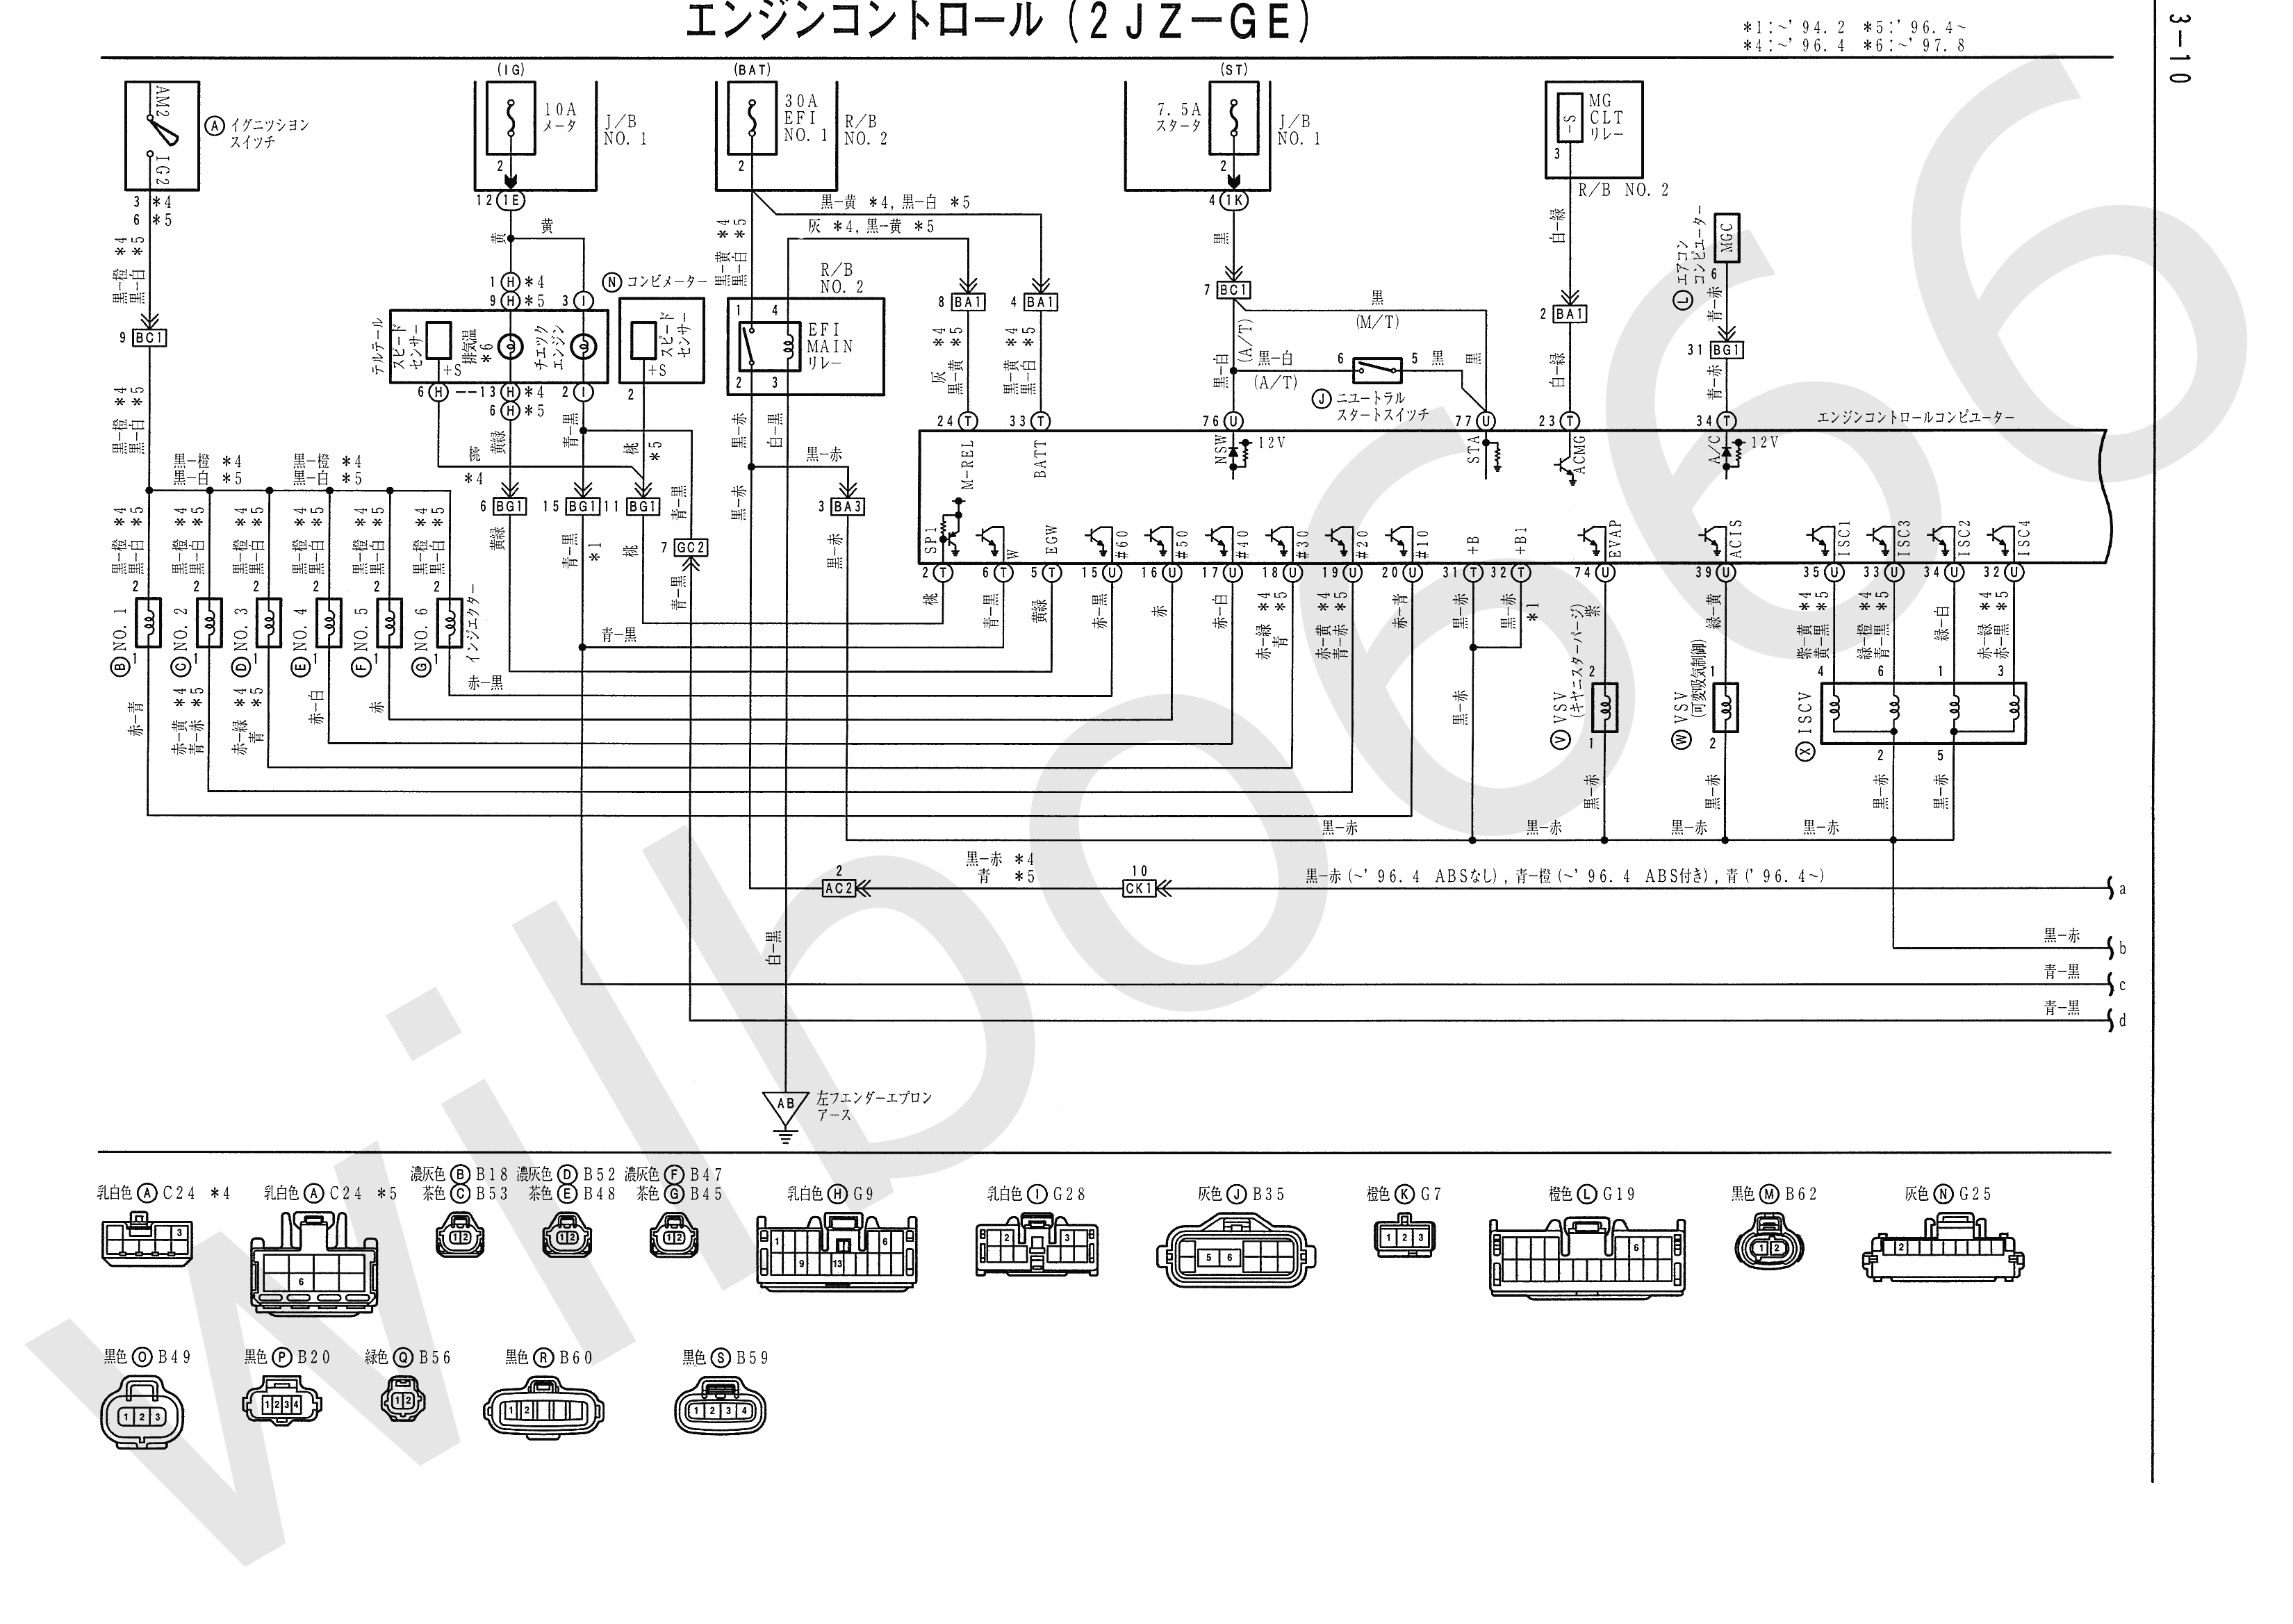 Amusing Kubota Wiring Diagram Pdf Contemporary ufc204 – L2550 Kubota Engine Diagram